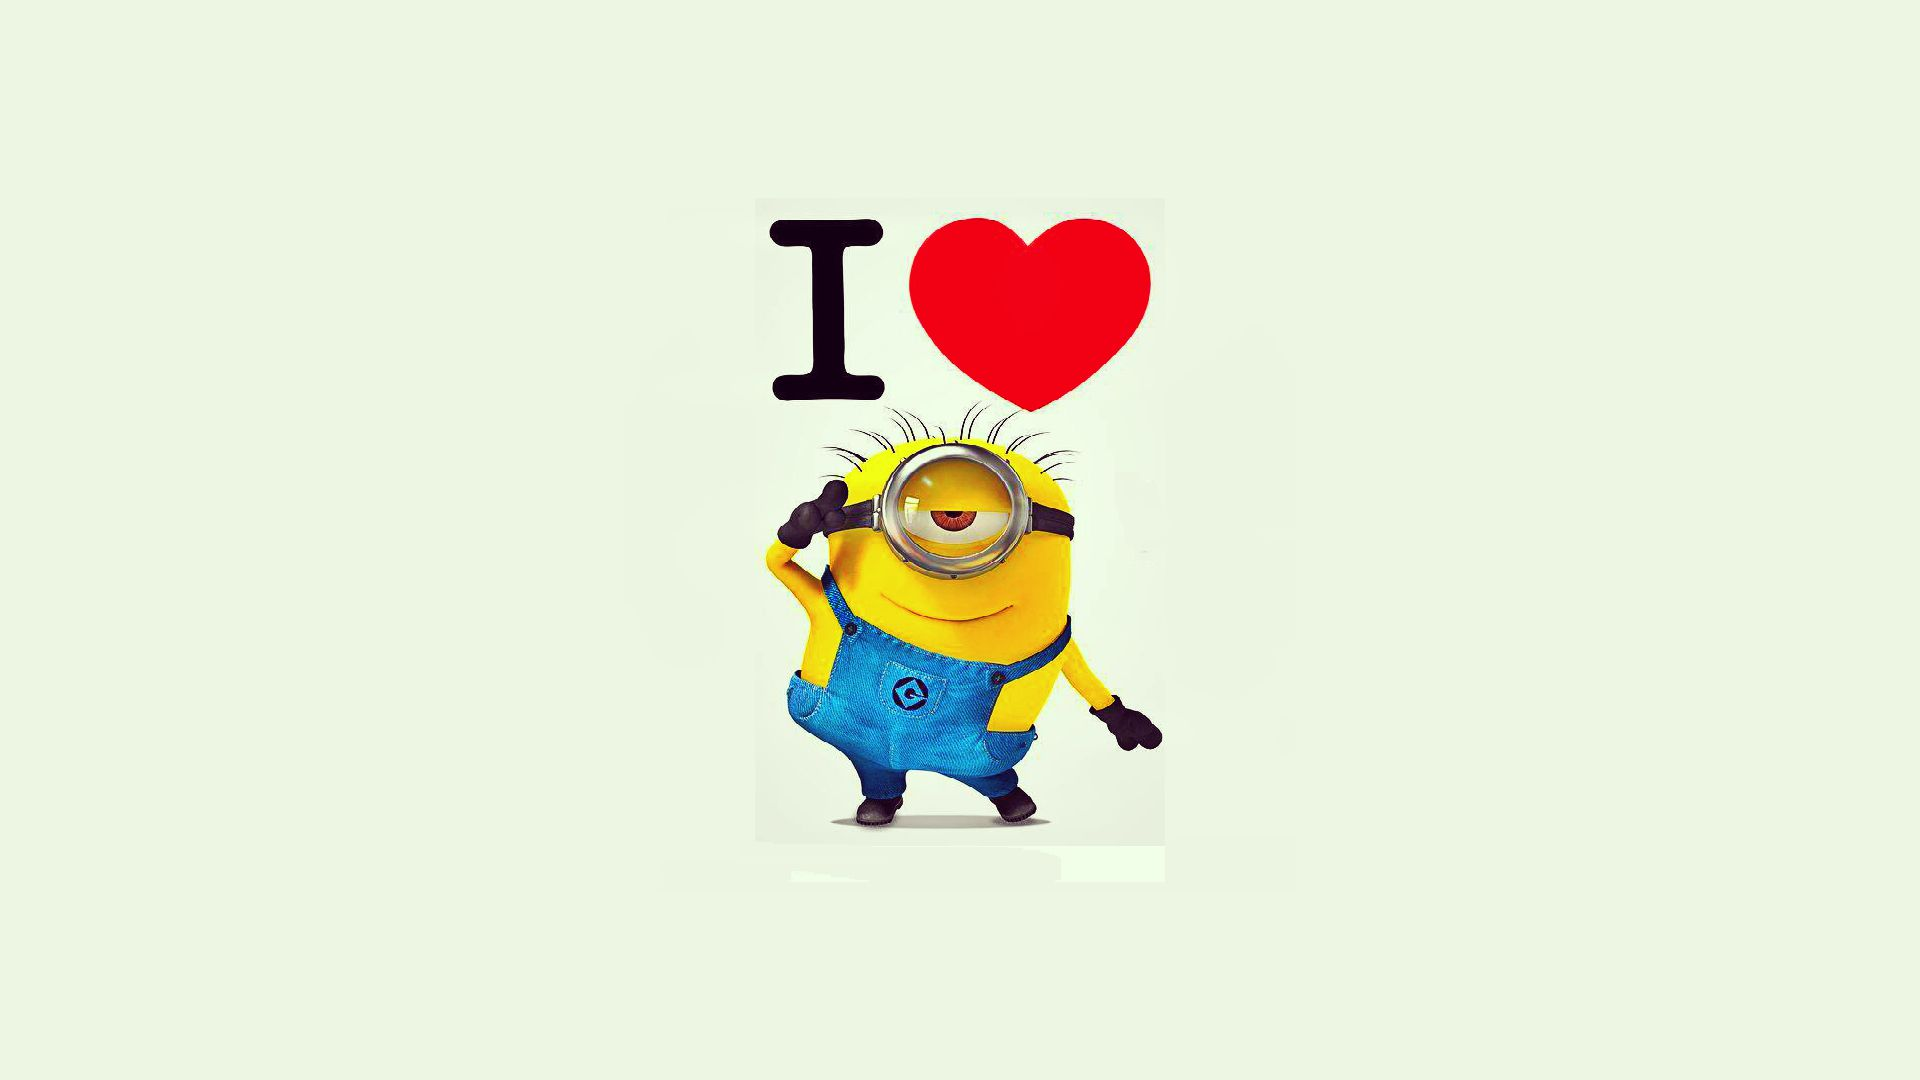 Minions Wallpaper For Desktop HD image and save image as click save 1920x1080